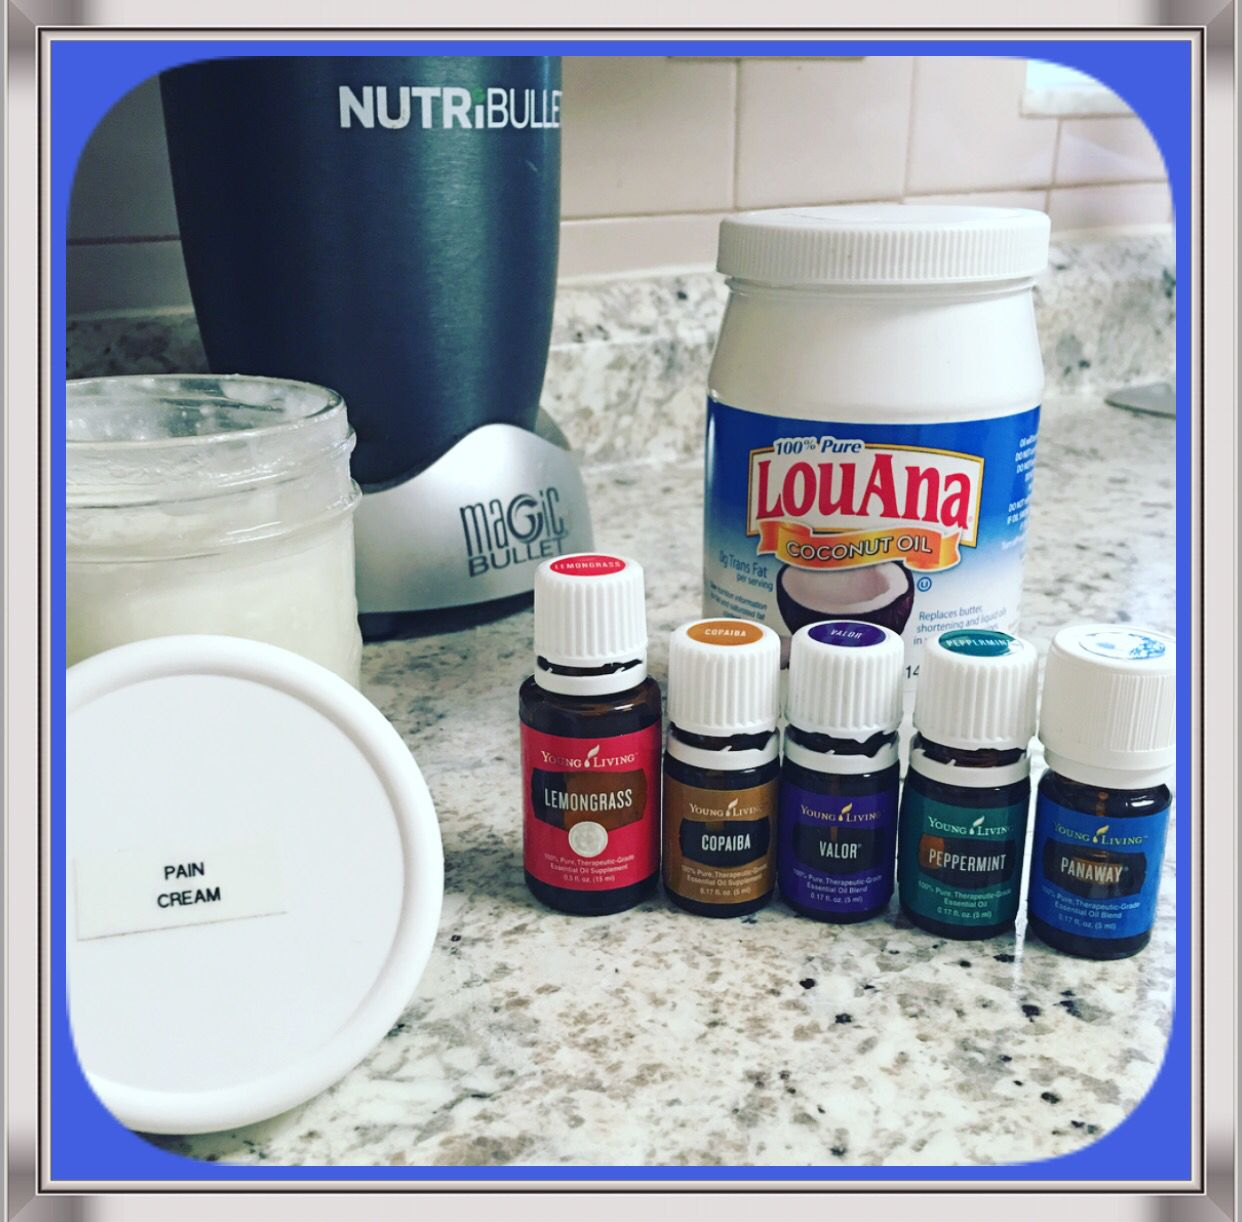 Amazing Pain Cream One Cup Coconut Oil 25 Drops Panaway